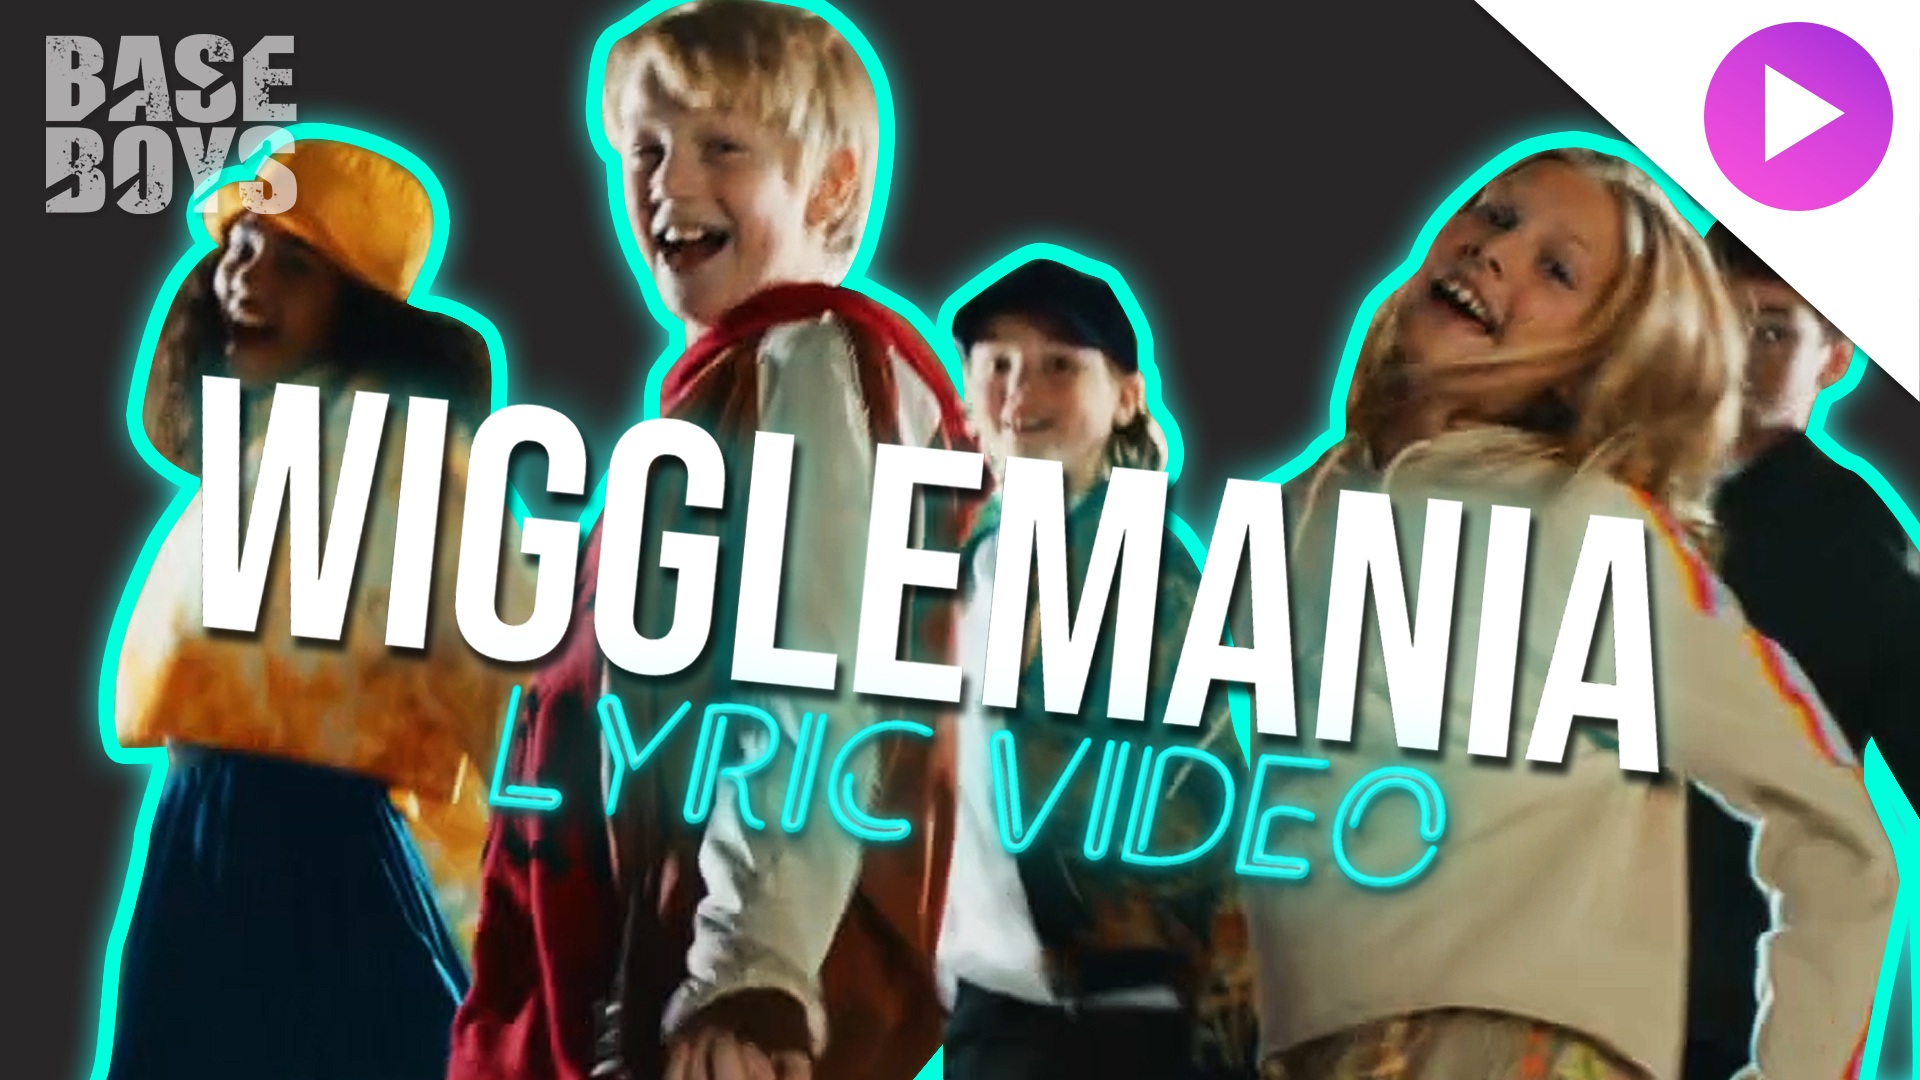 wigglemania_musikvideo_lyric_video_drupal.jpg